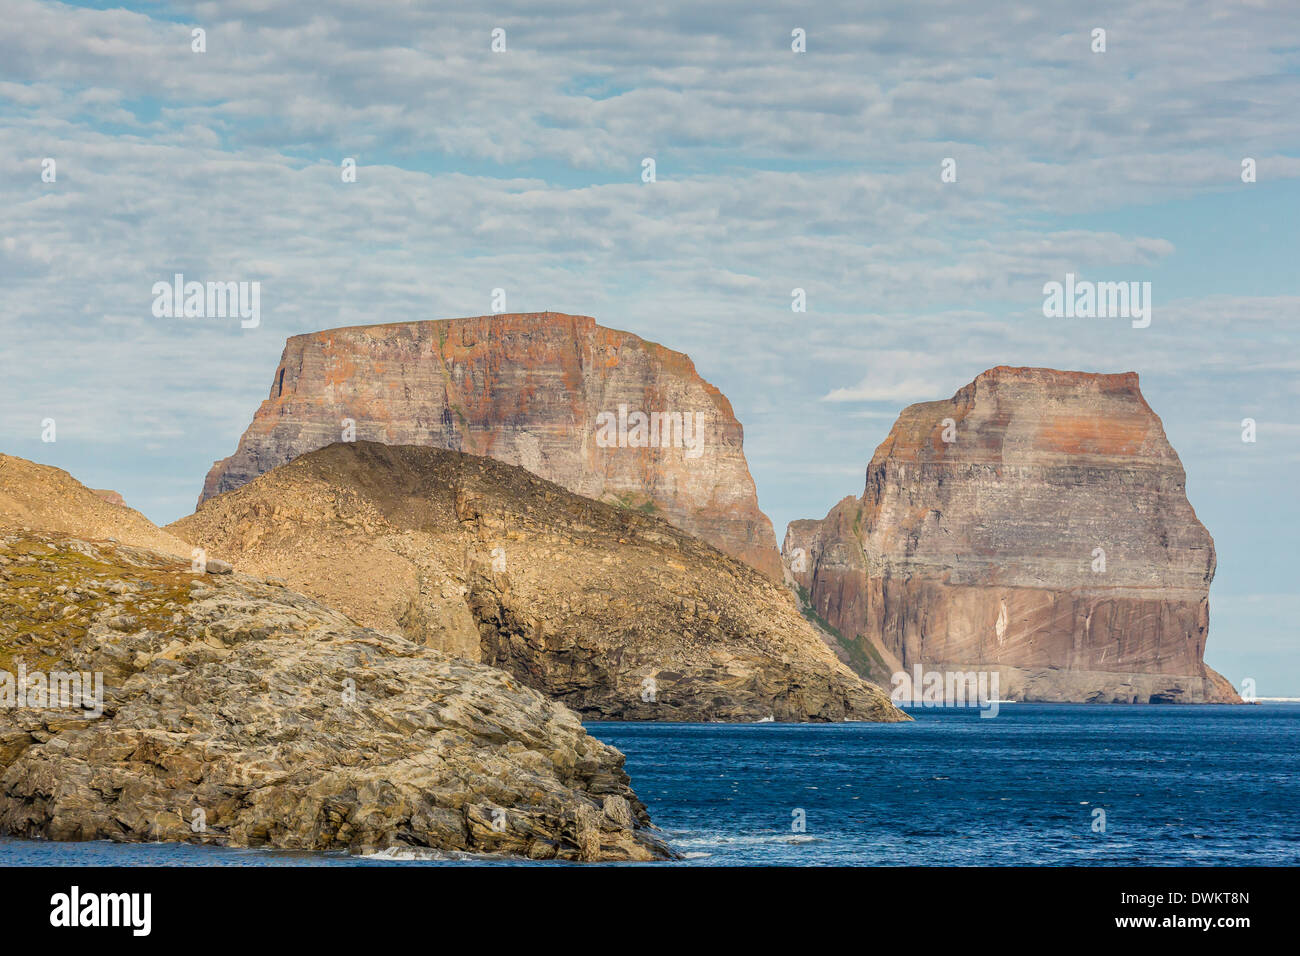 View of the jagged cliffs along the Cumberland Peninsula, Baffin Island, Nunavut, Canada, North America Stock Photo